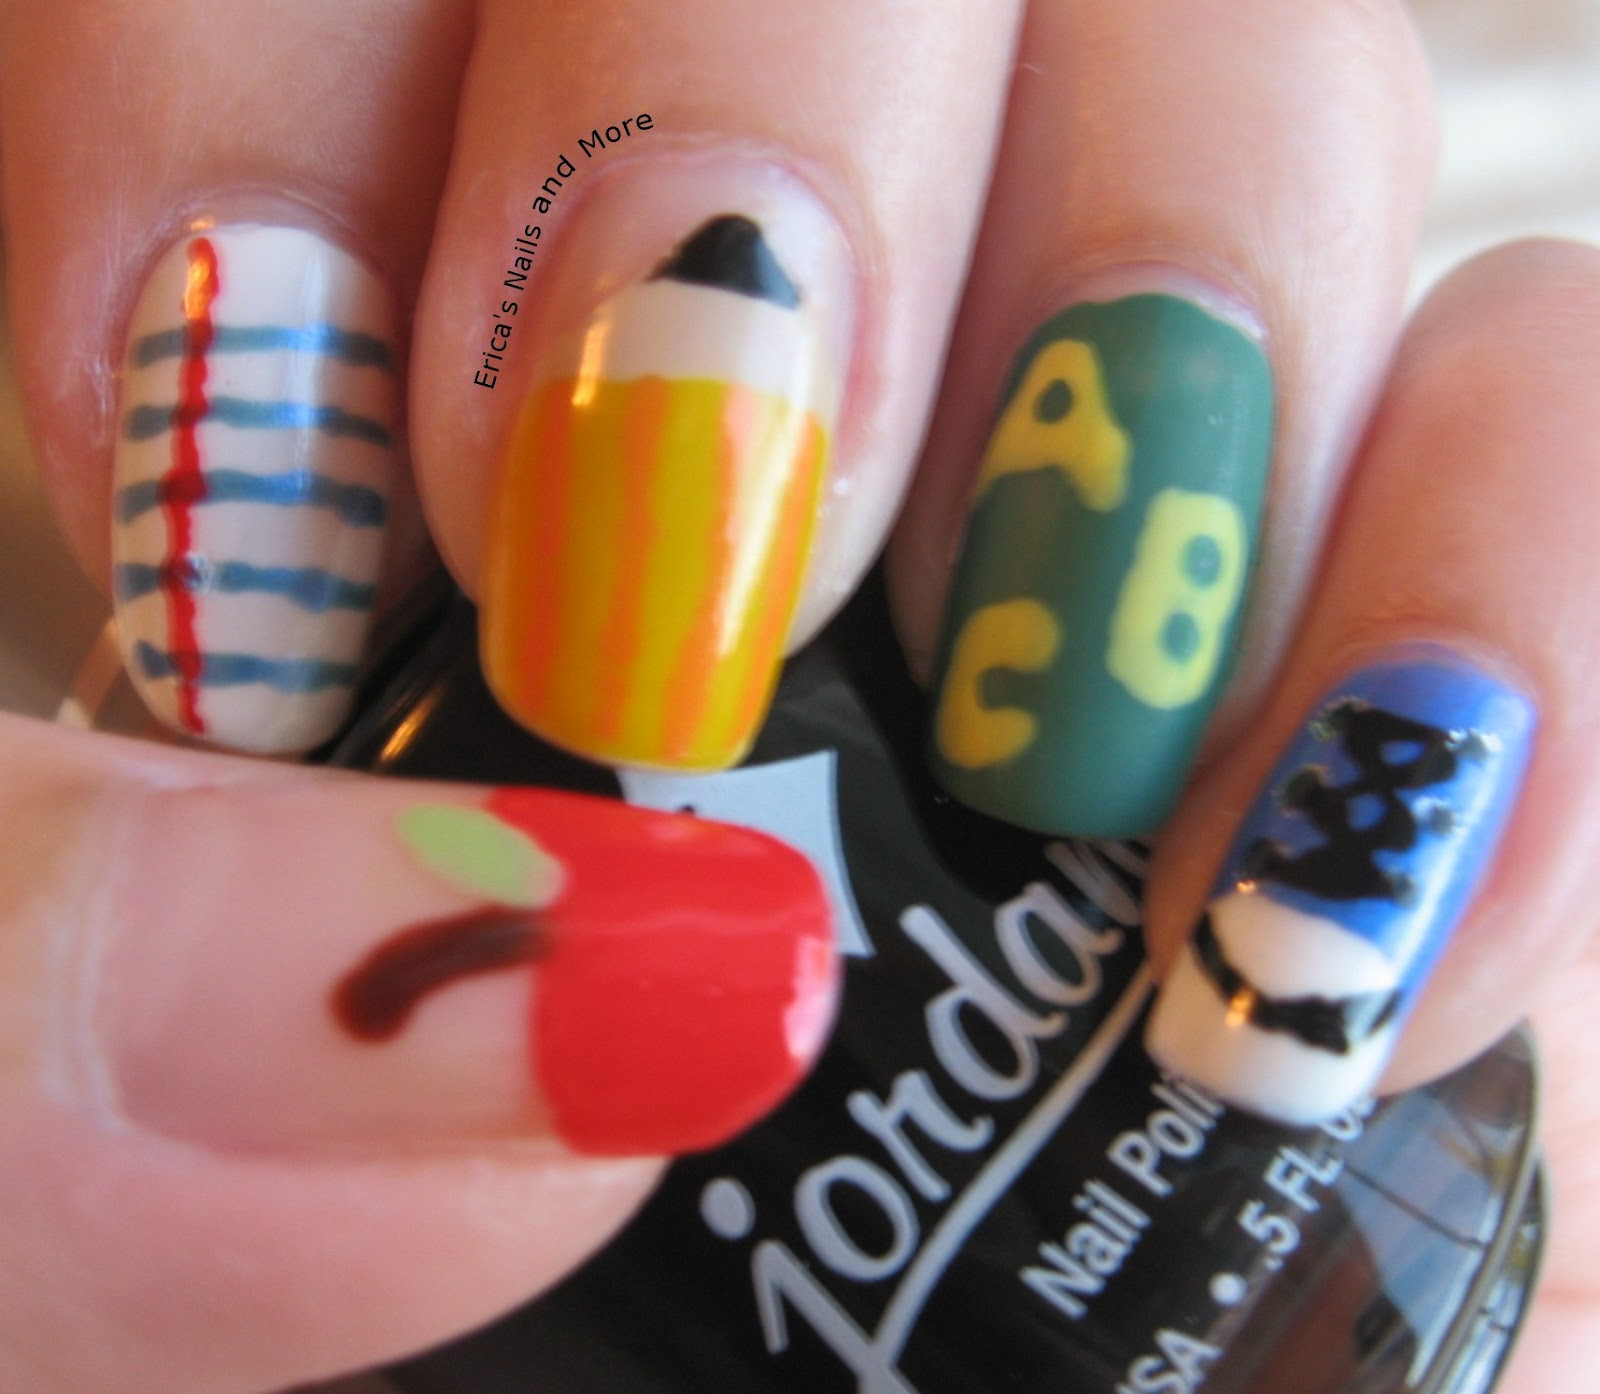 Notd Back To School Nail Art Ericas Nails And More